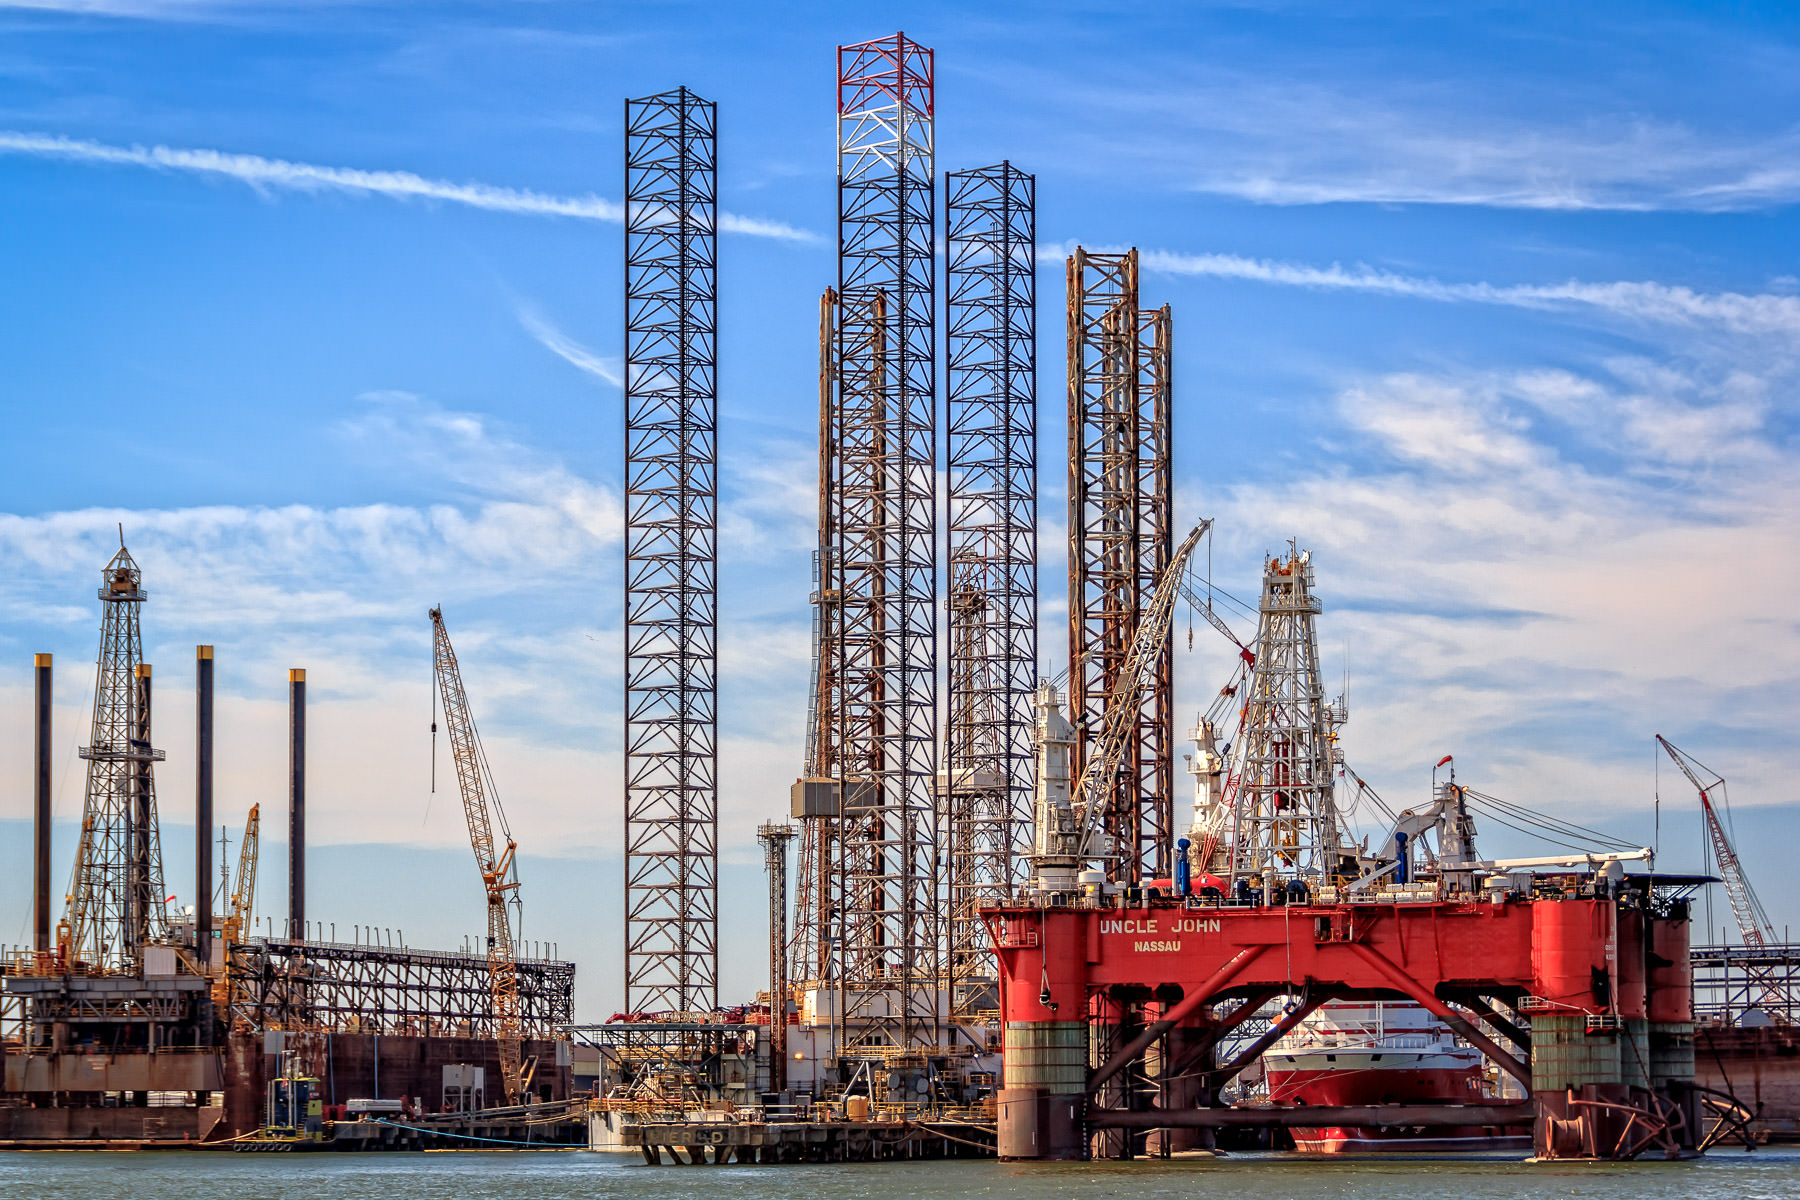 Oil platforms in drydock at Pelican Island, Galveston, Texas.